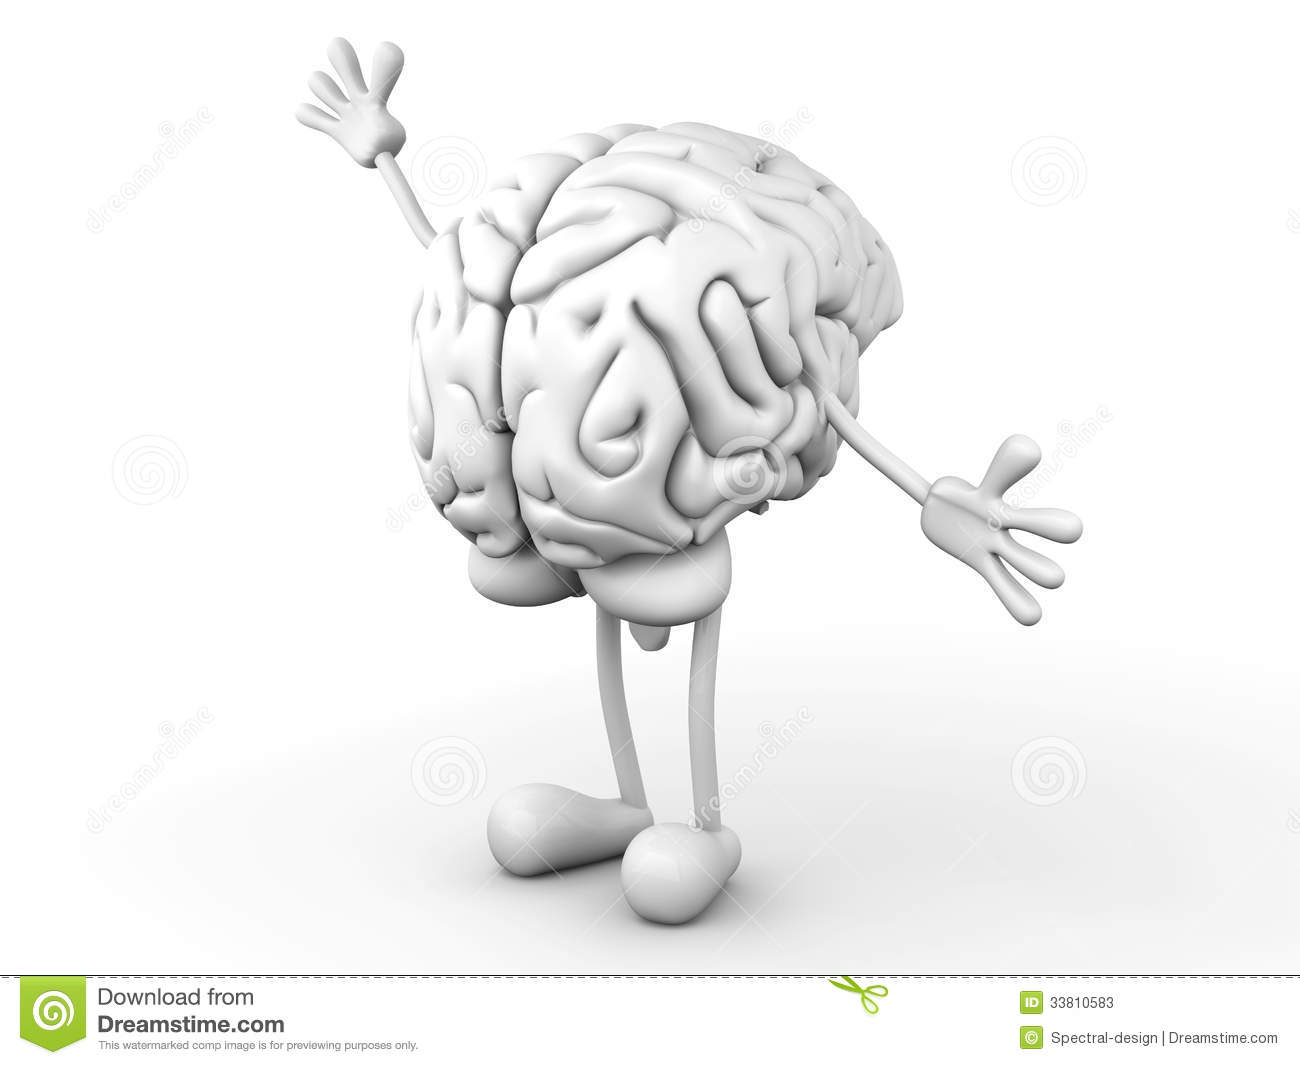 greeting Cartoon Brain. 3D rendered Illustration.